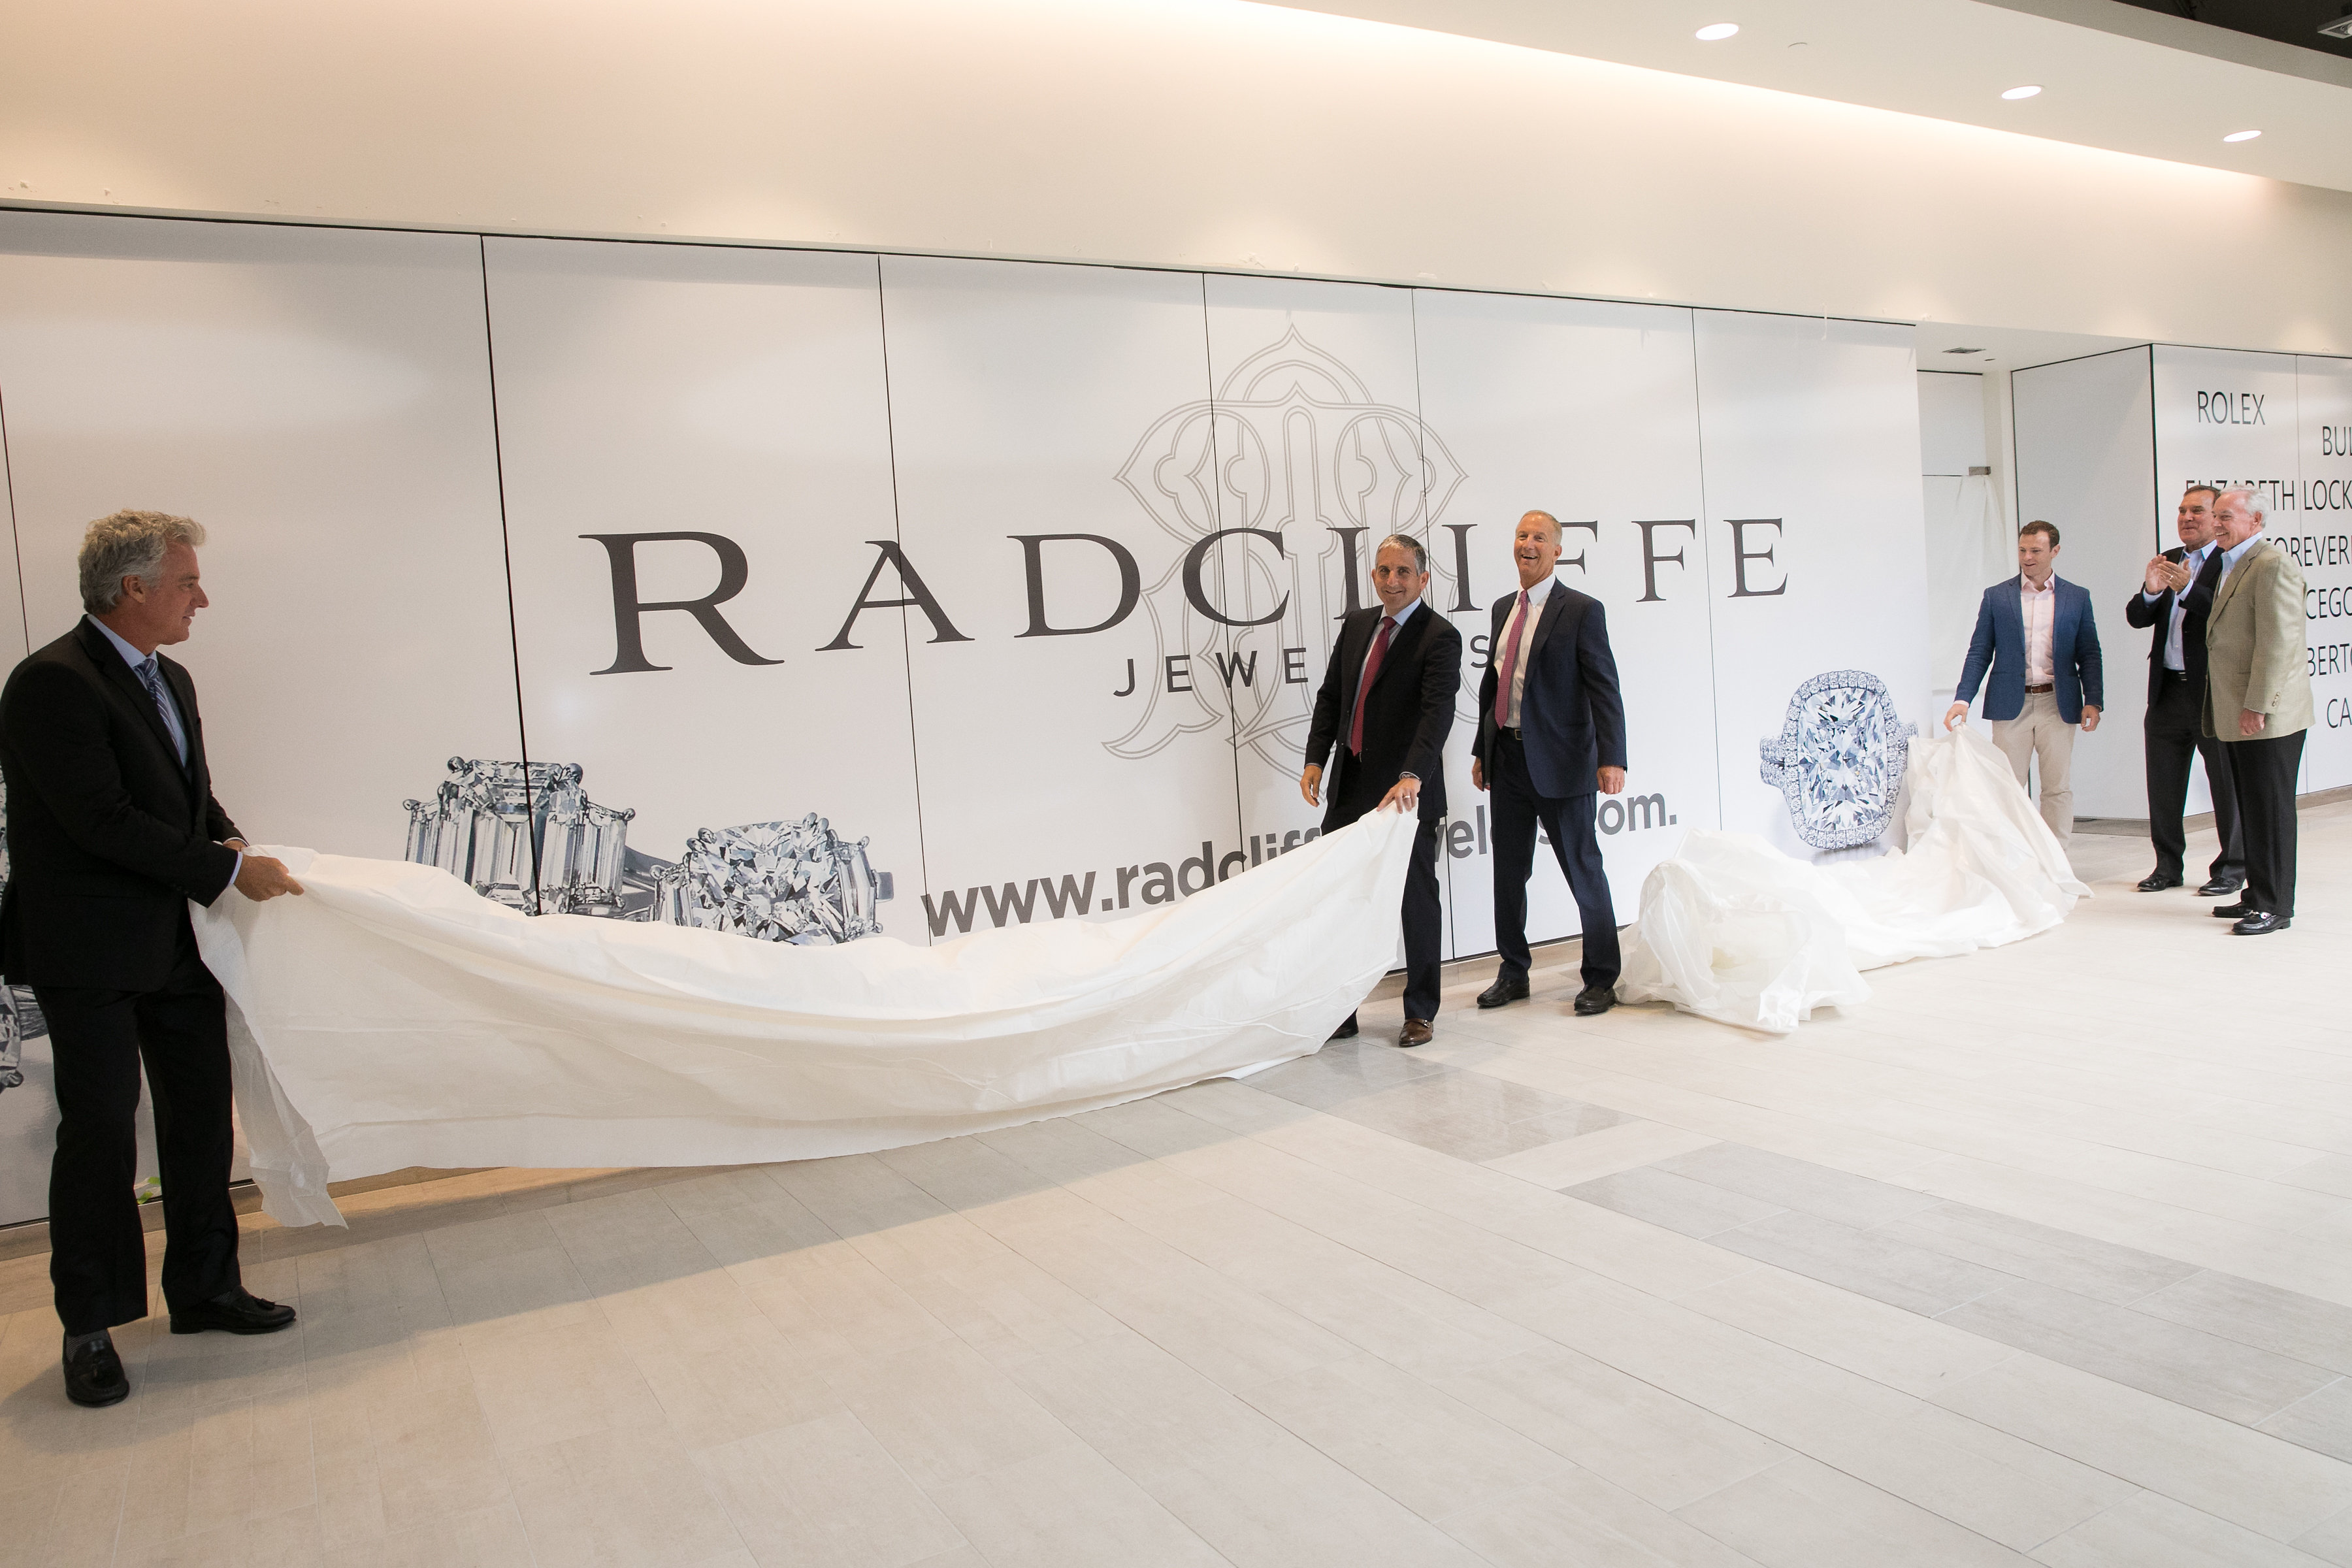 6b9fac66e24e Premier Retailer Radcliffe Jewelers Signs Lease for The Shops at ...